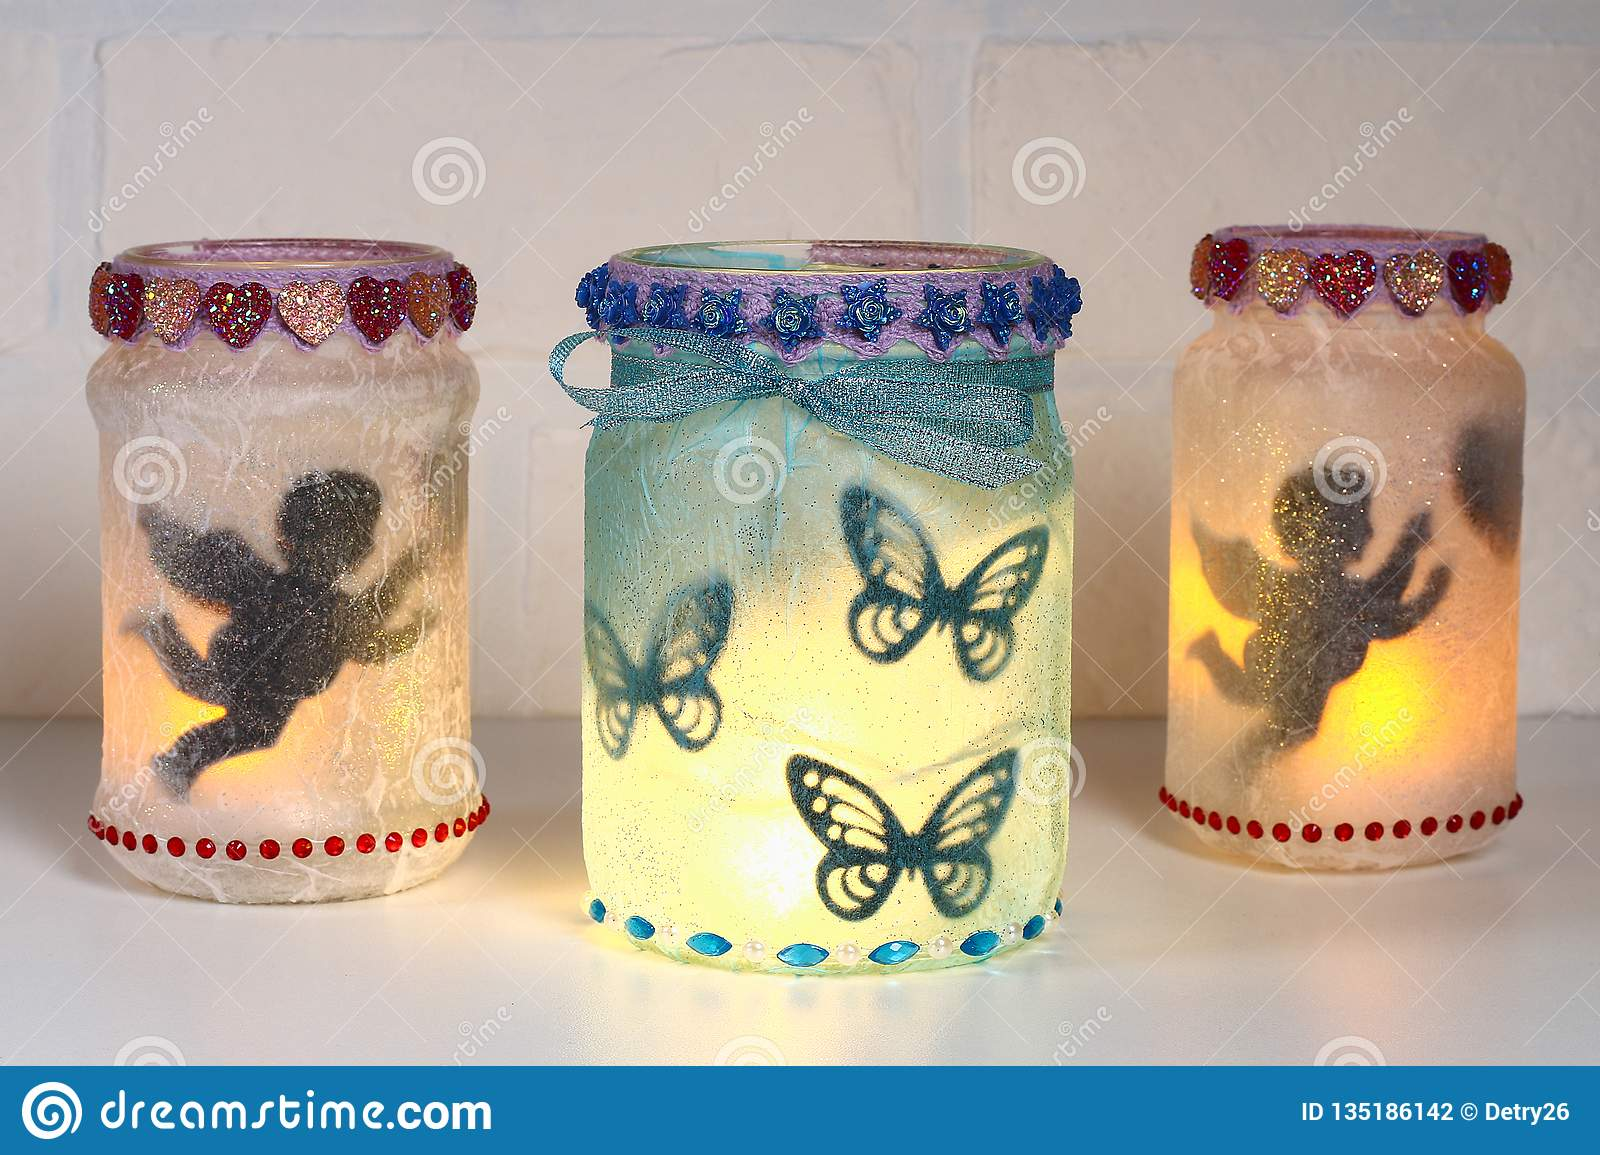 Diy Fairy Jar On White Brick Wall Background Gift Ideas Decor St February 14 Valentines Day Love Stock Photo Image Of Wall Happy 135186142